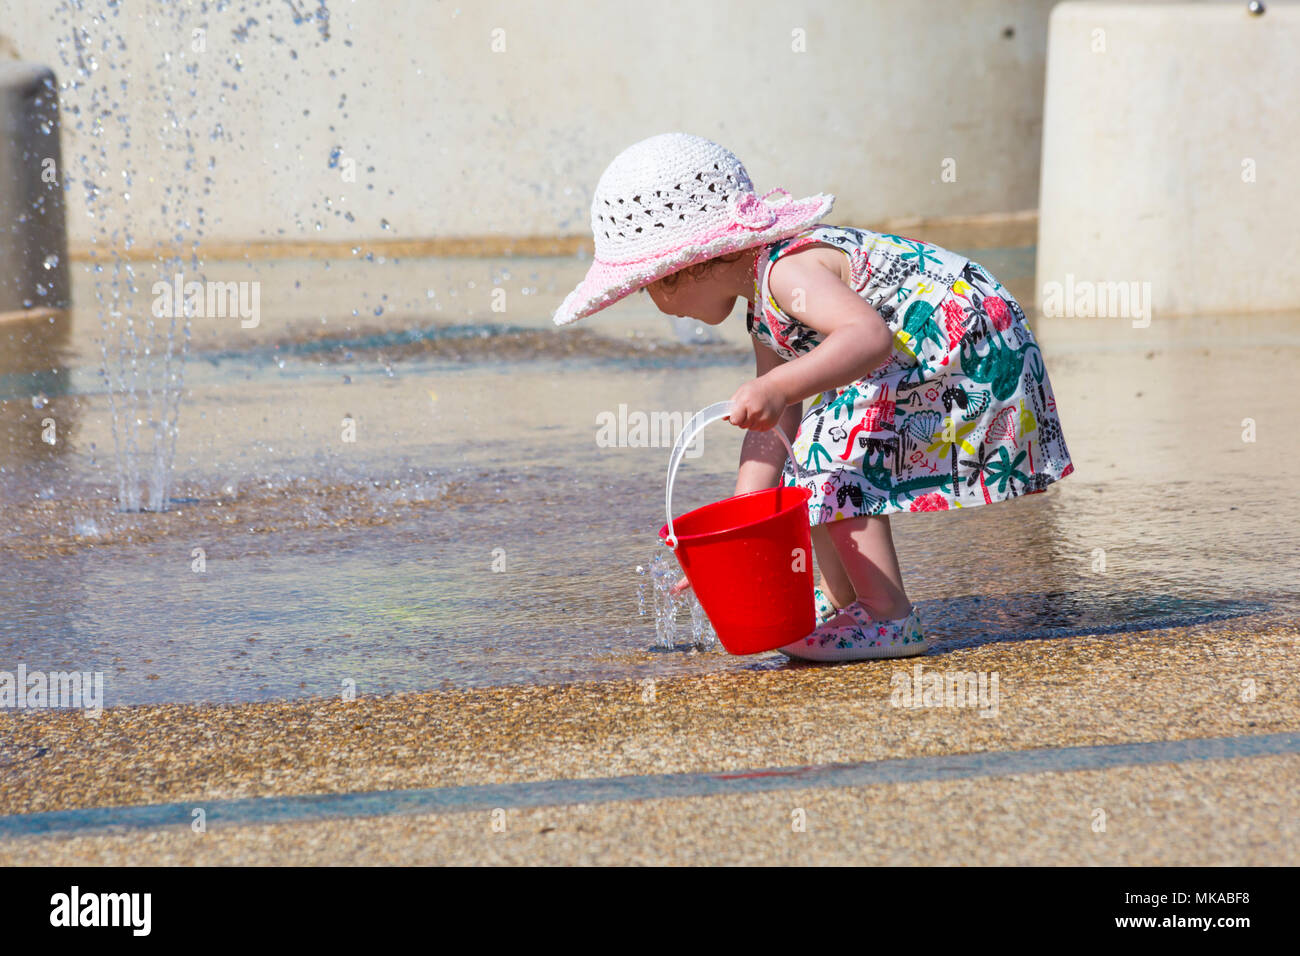 Bournemouth, Dorset, UK. 7th May 2018. UK weather:  Young girl cooling down playing in the water feature at Pier Approach on a hot and sunny May Bank Holiday Monday. Credit: Carolyn Jenkins/Alamy Live News Stock Photo